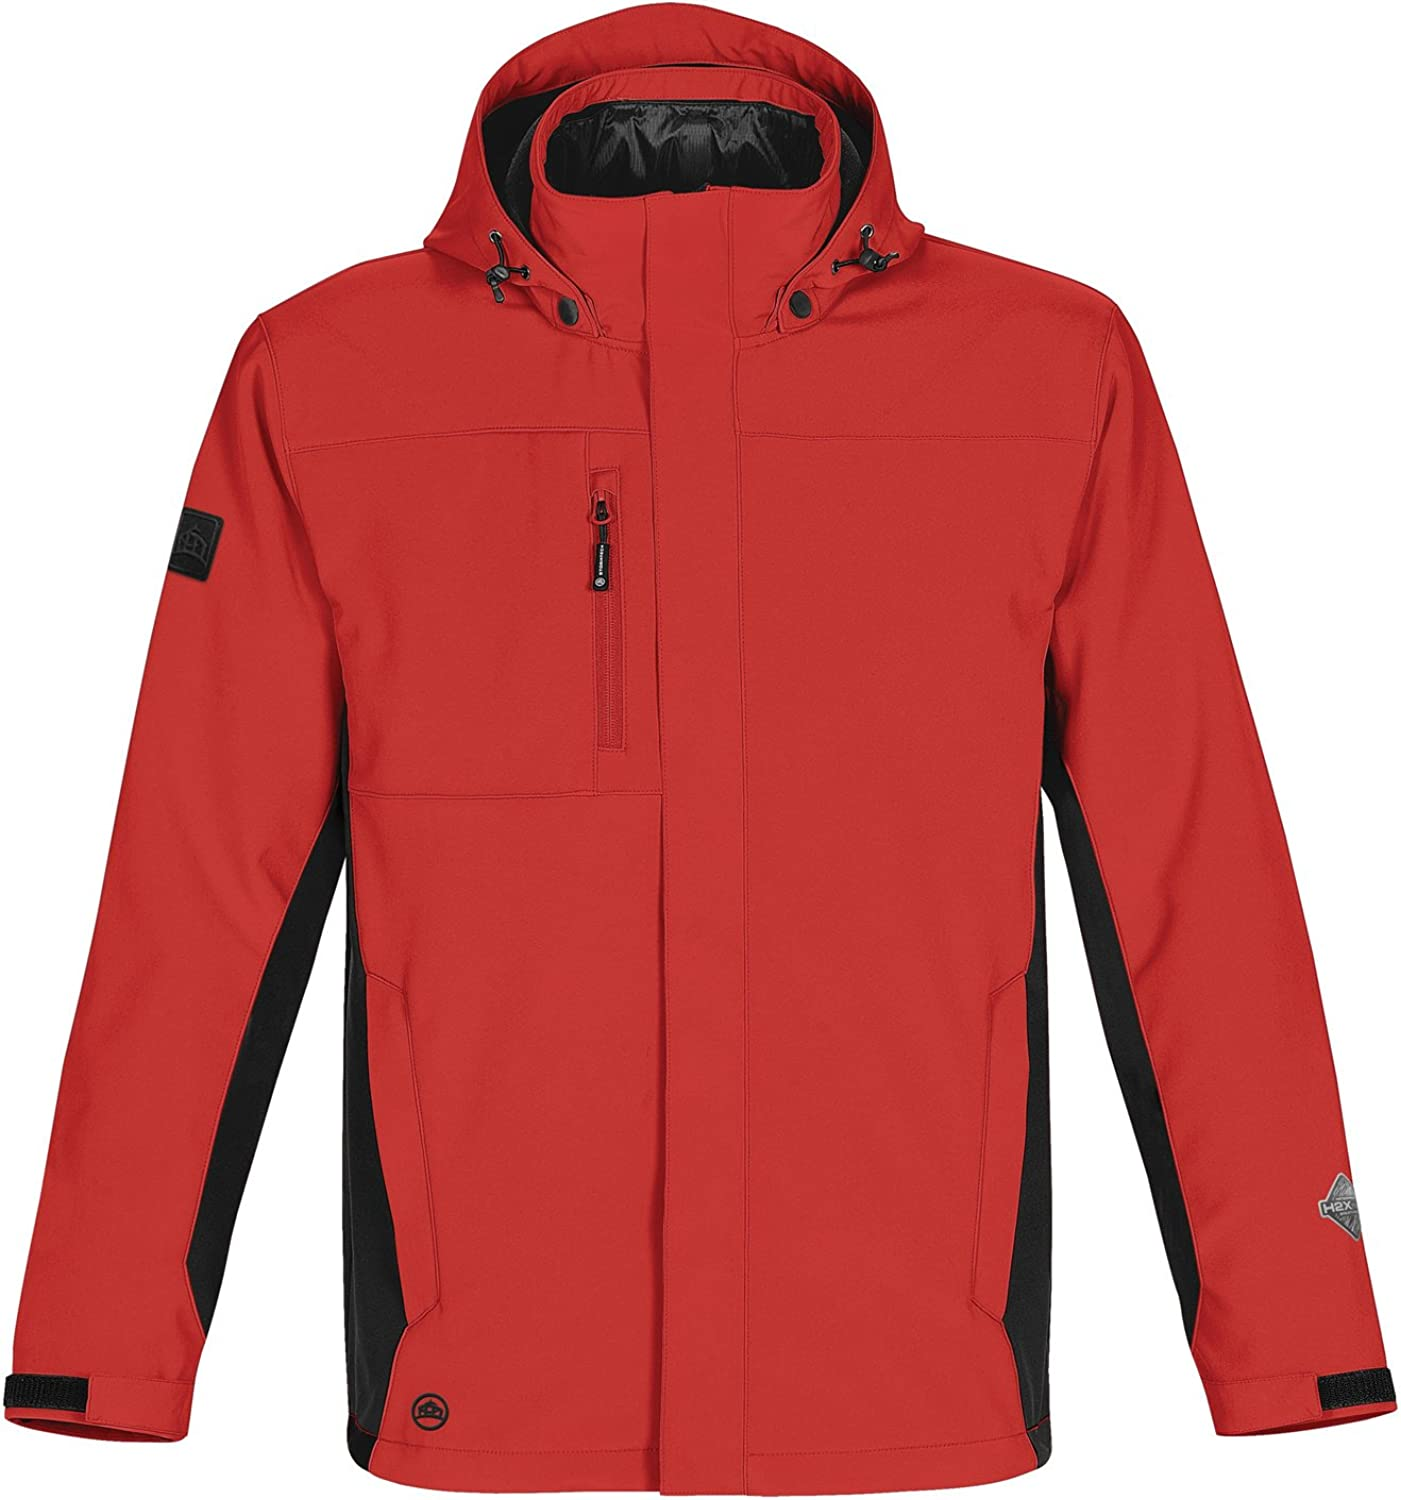 Stormtech Atmosphere 3 in 1 High Performance Jacket